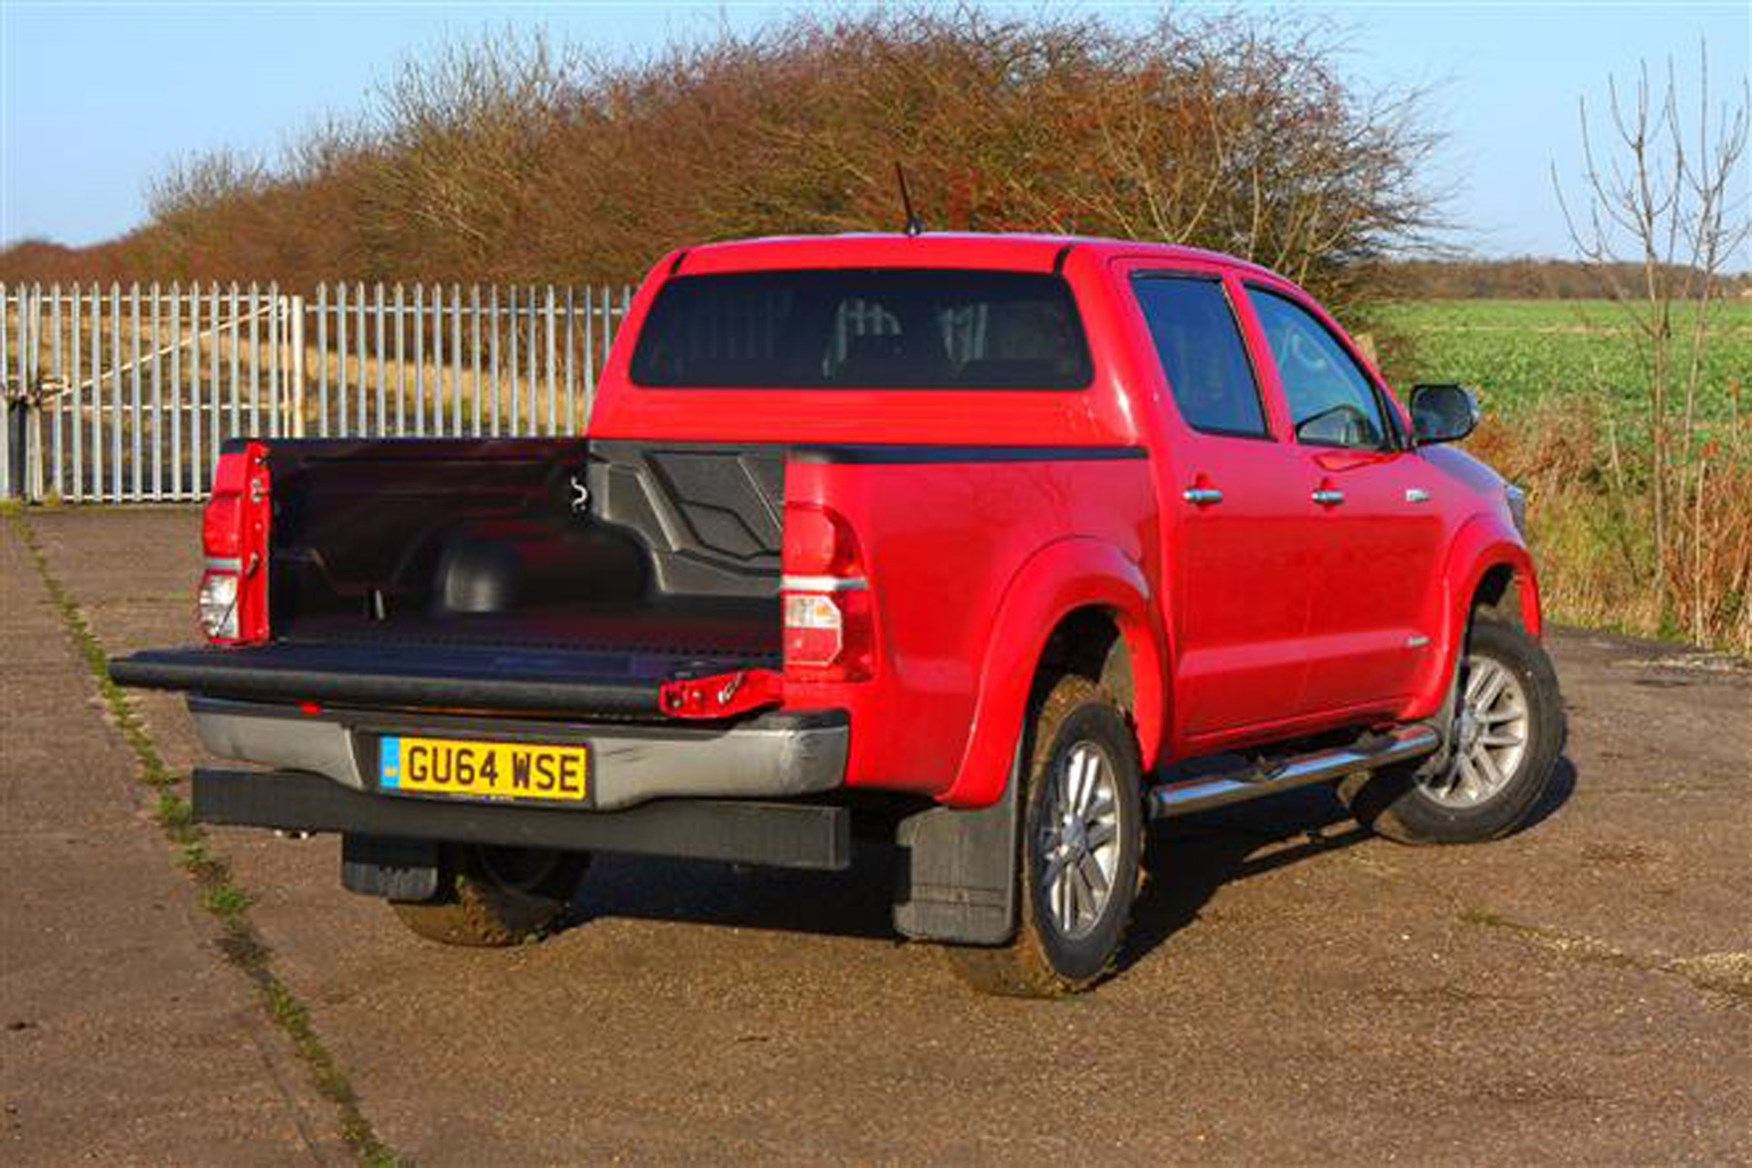 Toyota Hilux review on Parkers Vans - load area access